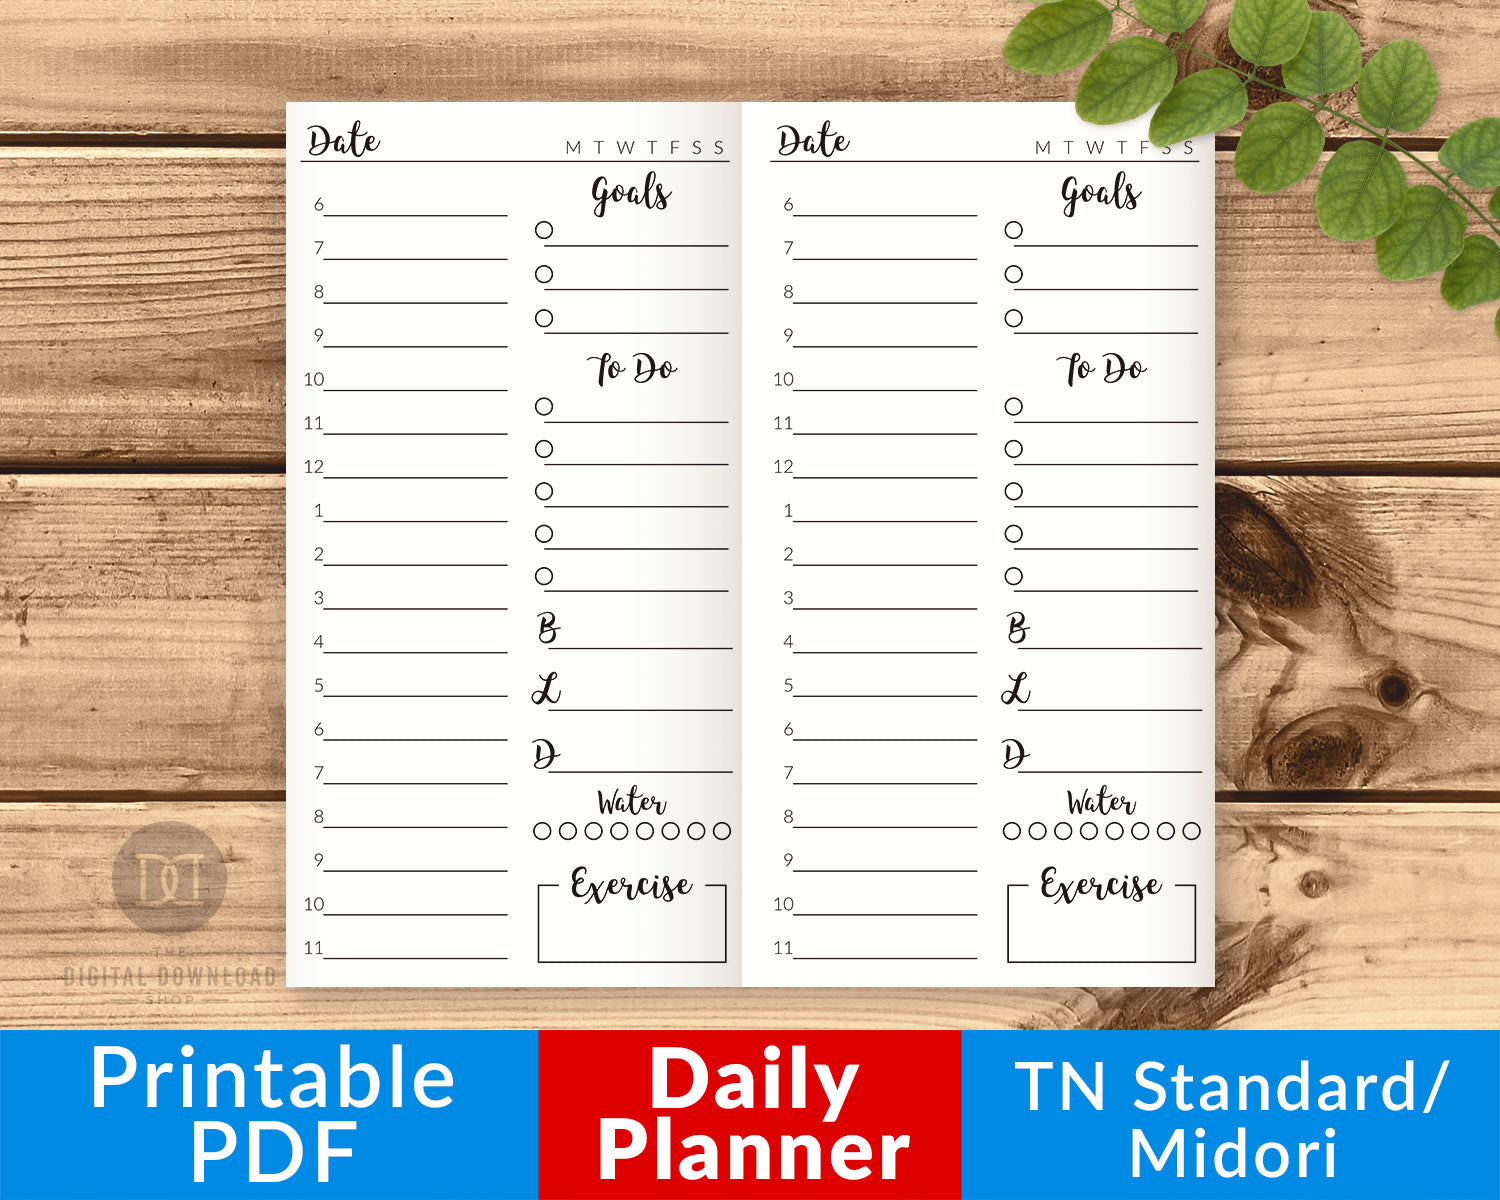 graphic about Daily Planner Printable titled TN Classic/Month-to-month/Midori Day by day Planner Printable